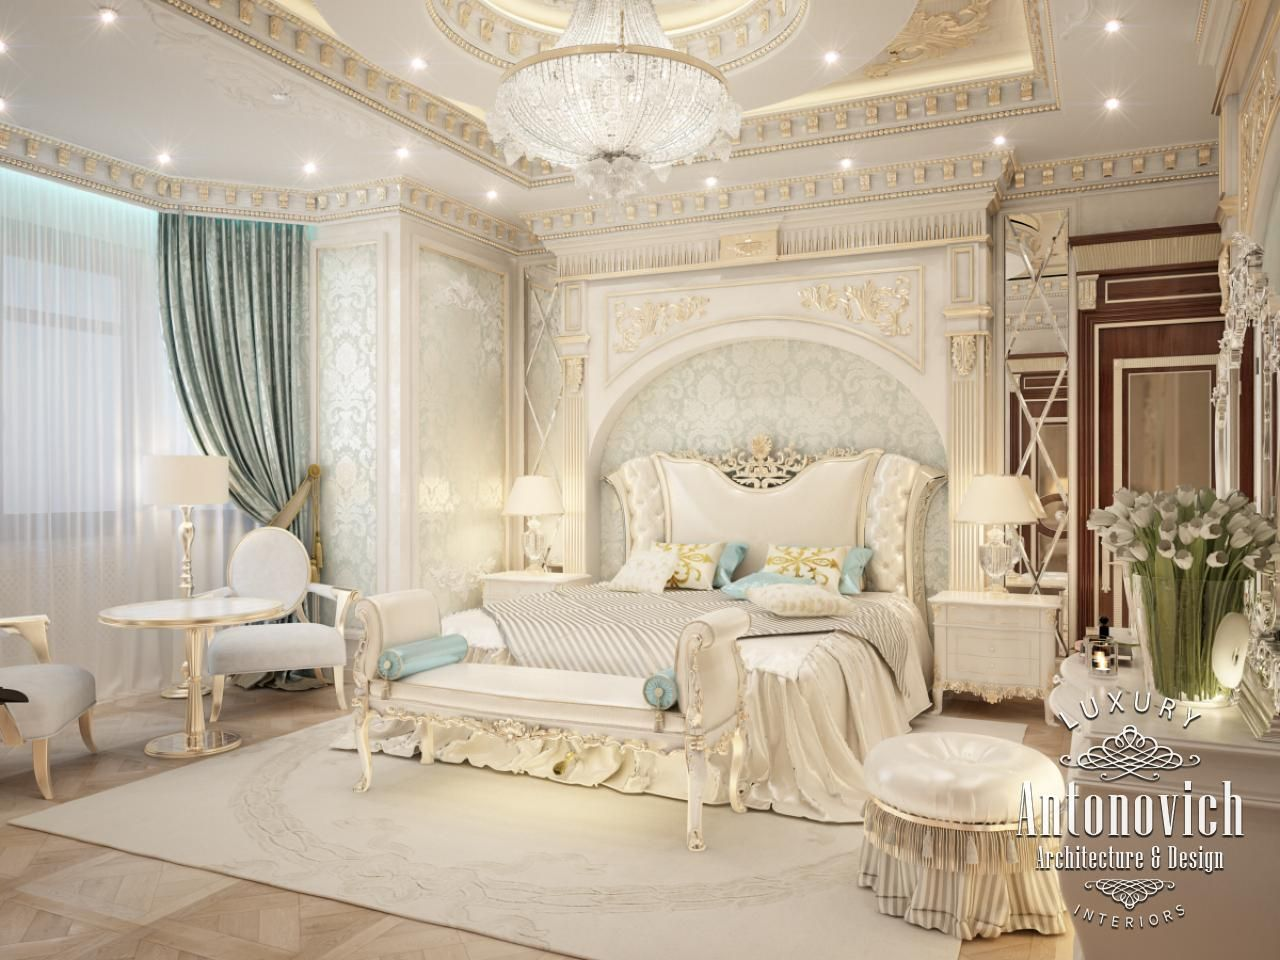 Best Bedroom Design In Dubai Gorgeous Bedroom Photo 1 400 x 300